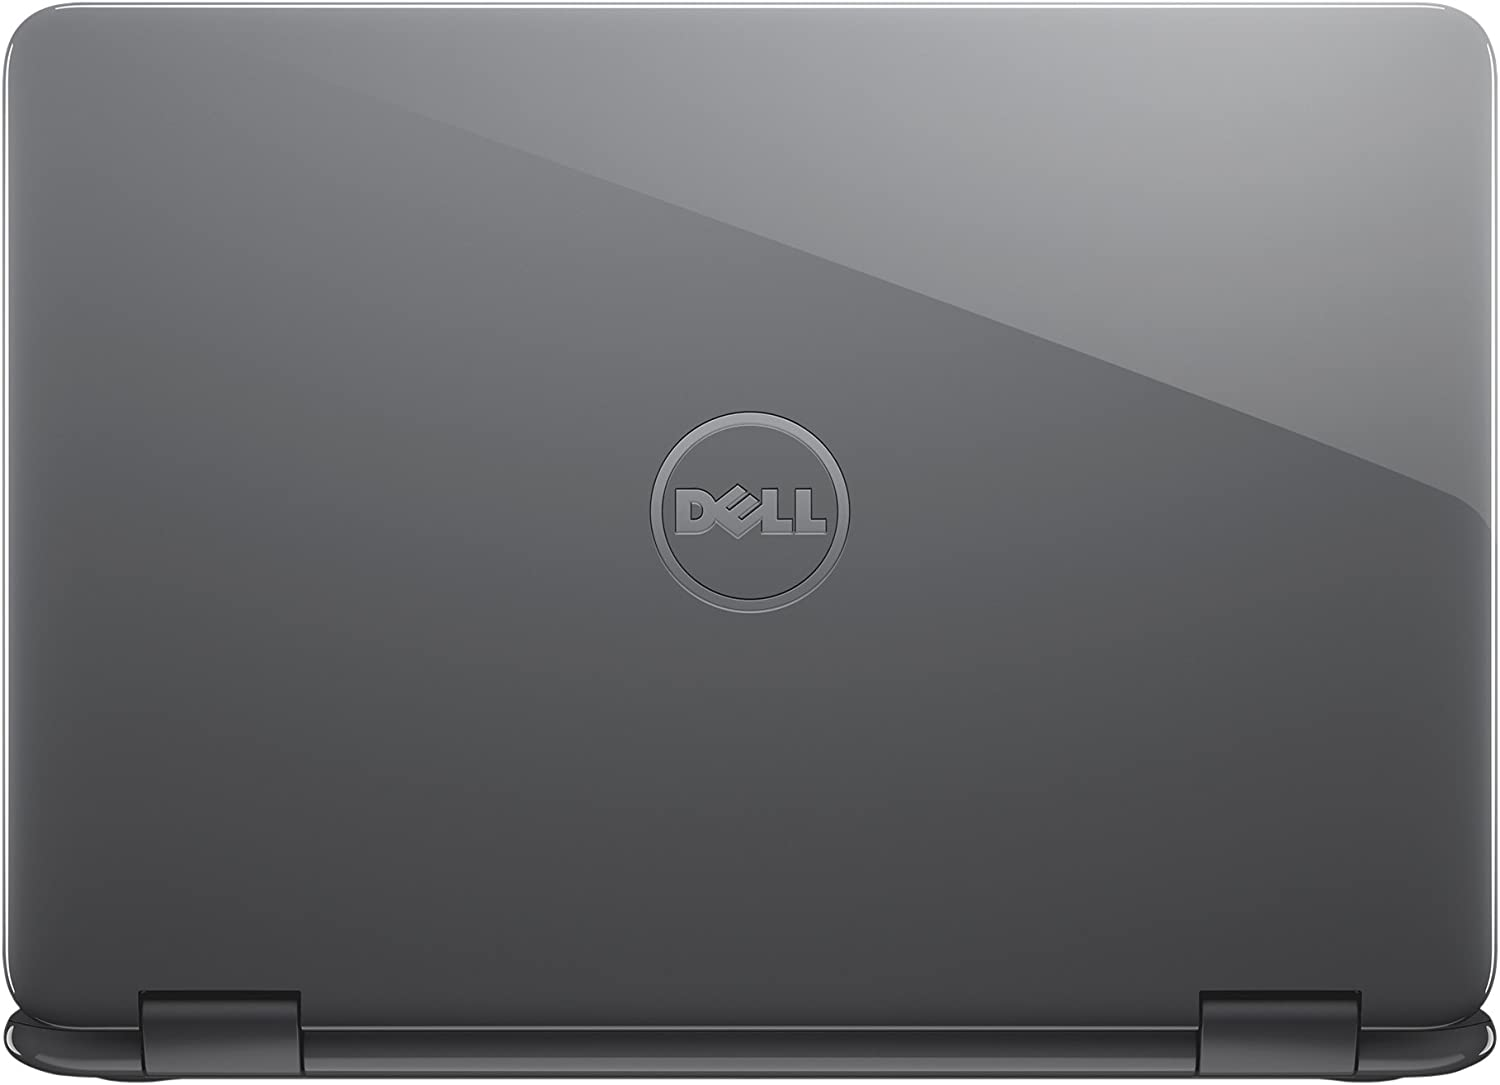 "Dell i3168-3272GRY 11.6"" HD 2-in-1 Laptop (Intel Pentium, 4GB, 500 GB HDD, Windows 10) - Gray"